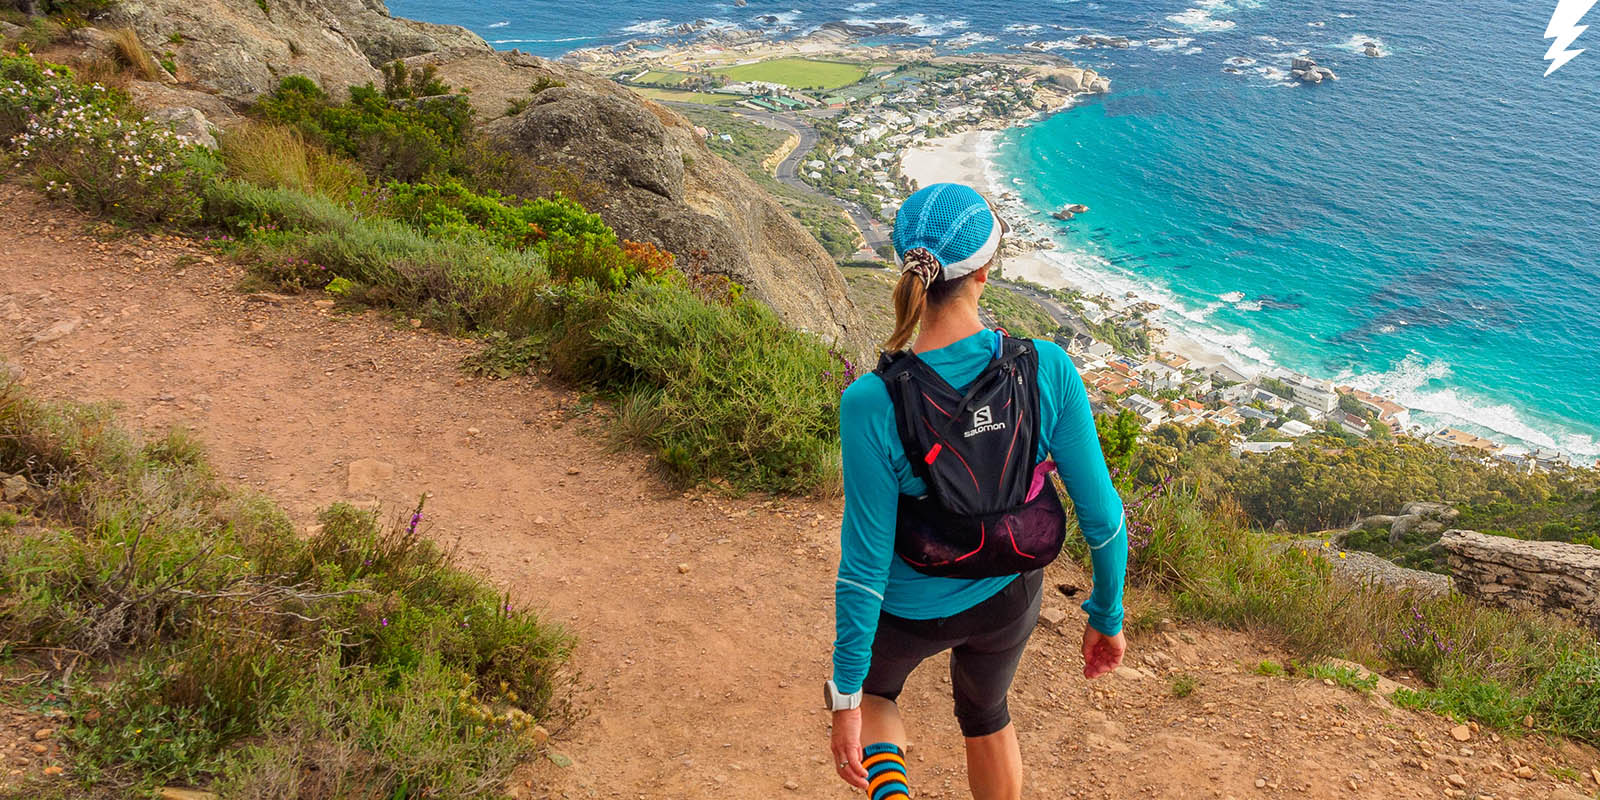 Exploring Cape Town - Trail Running a long way from home